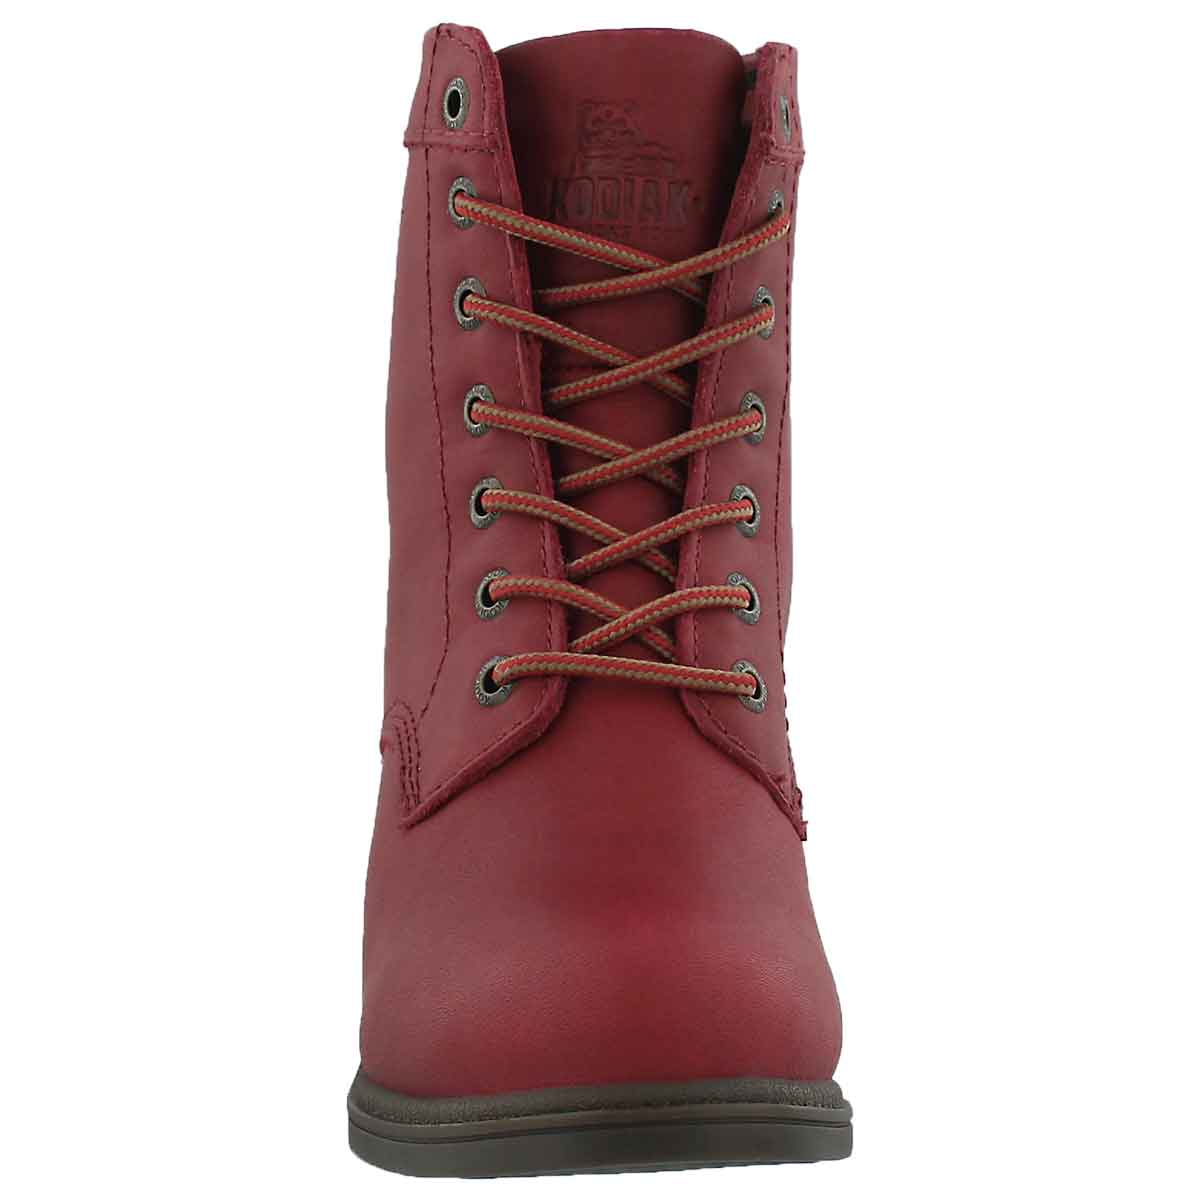 Lds Claire red wtpf lace up ankle bootie